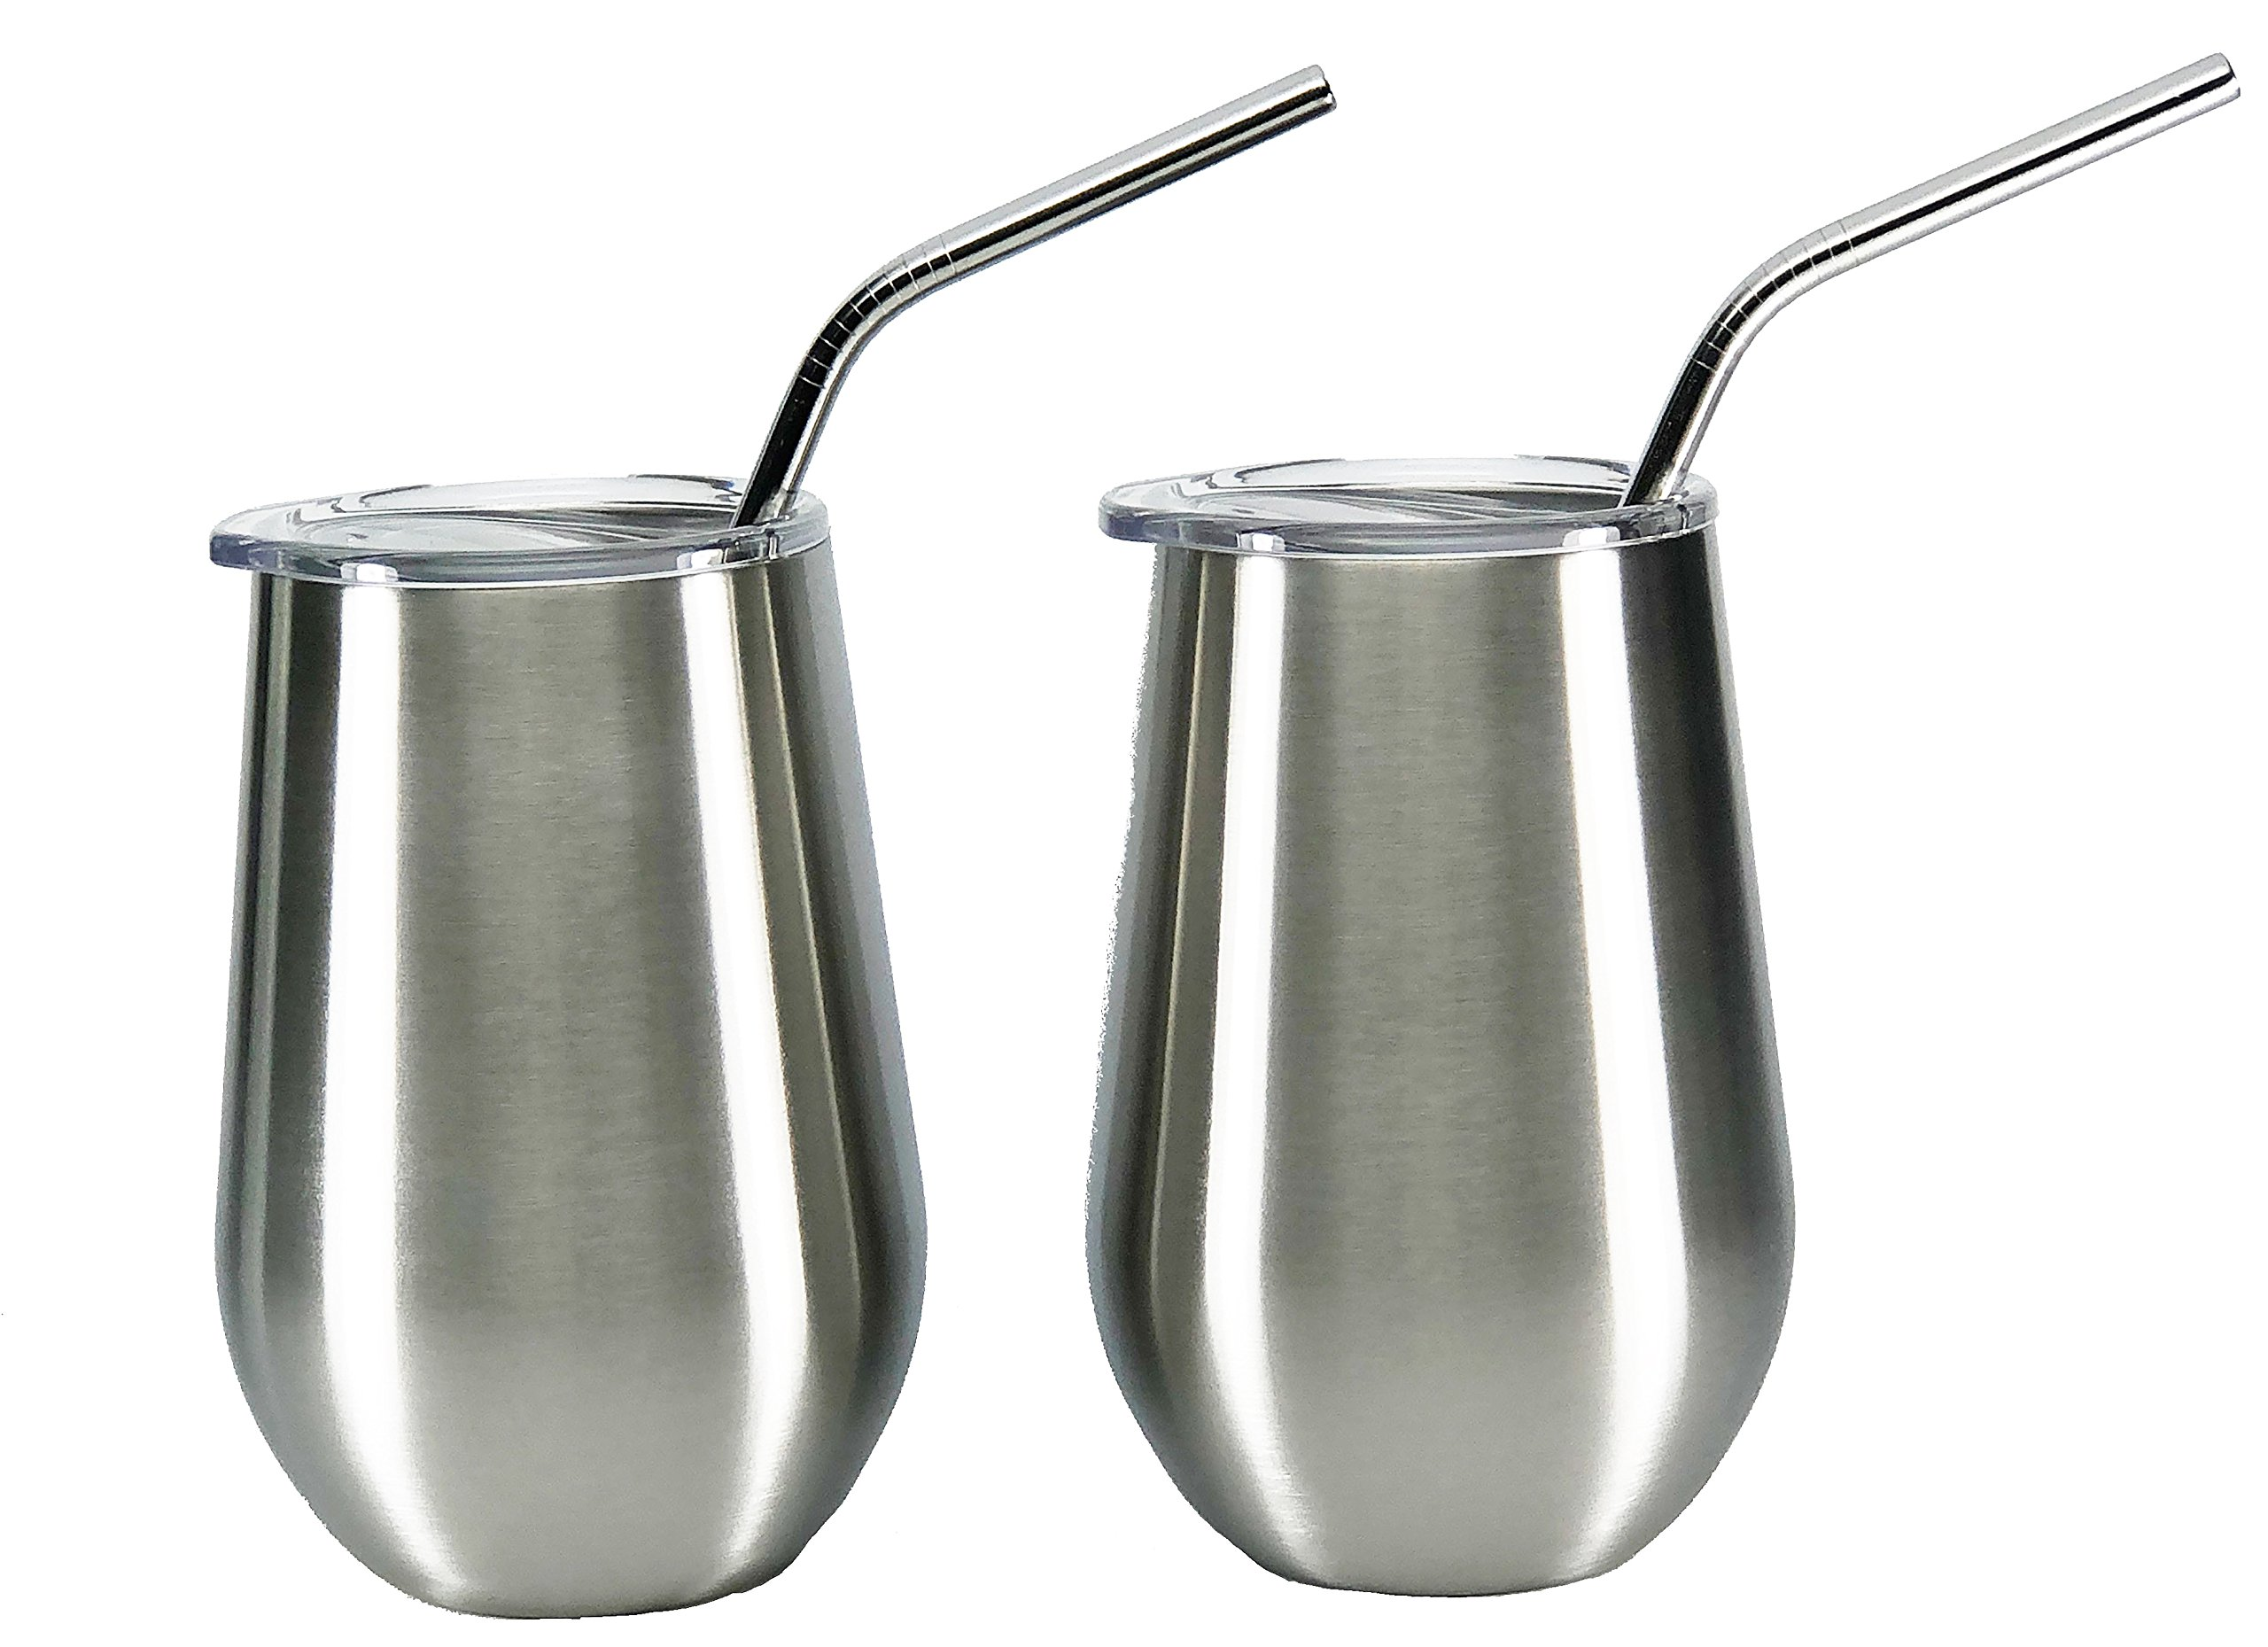 Insulated Double Walled and Vacuum Sealed Stemless 12 oz Stainless Steel Elegant Wine Glass Tumbler Set of 2 with Lids and Stainless Steel Straws - No Sweat- No Seams - Dishwasher safe